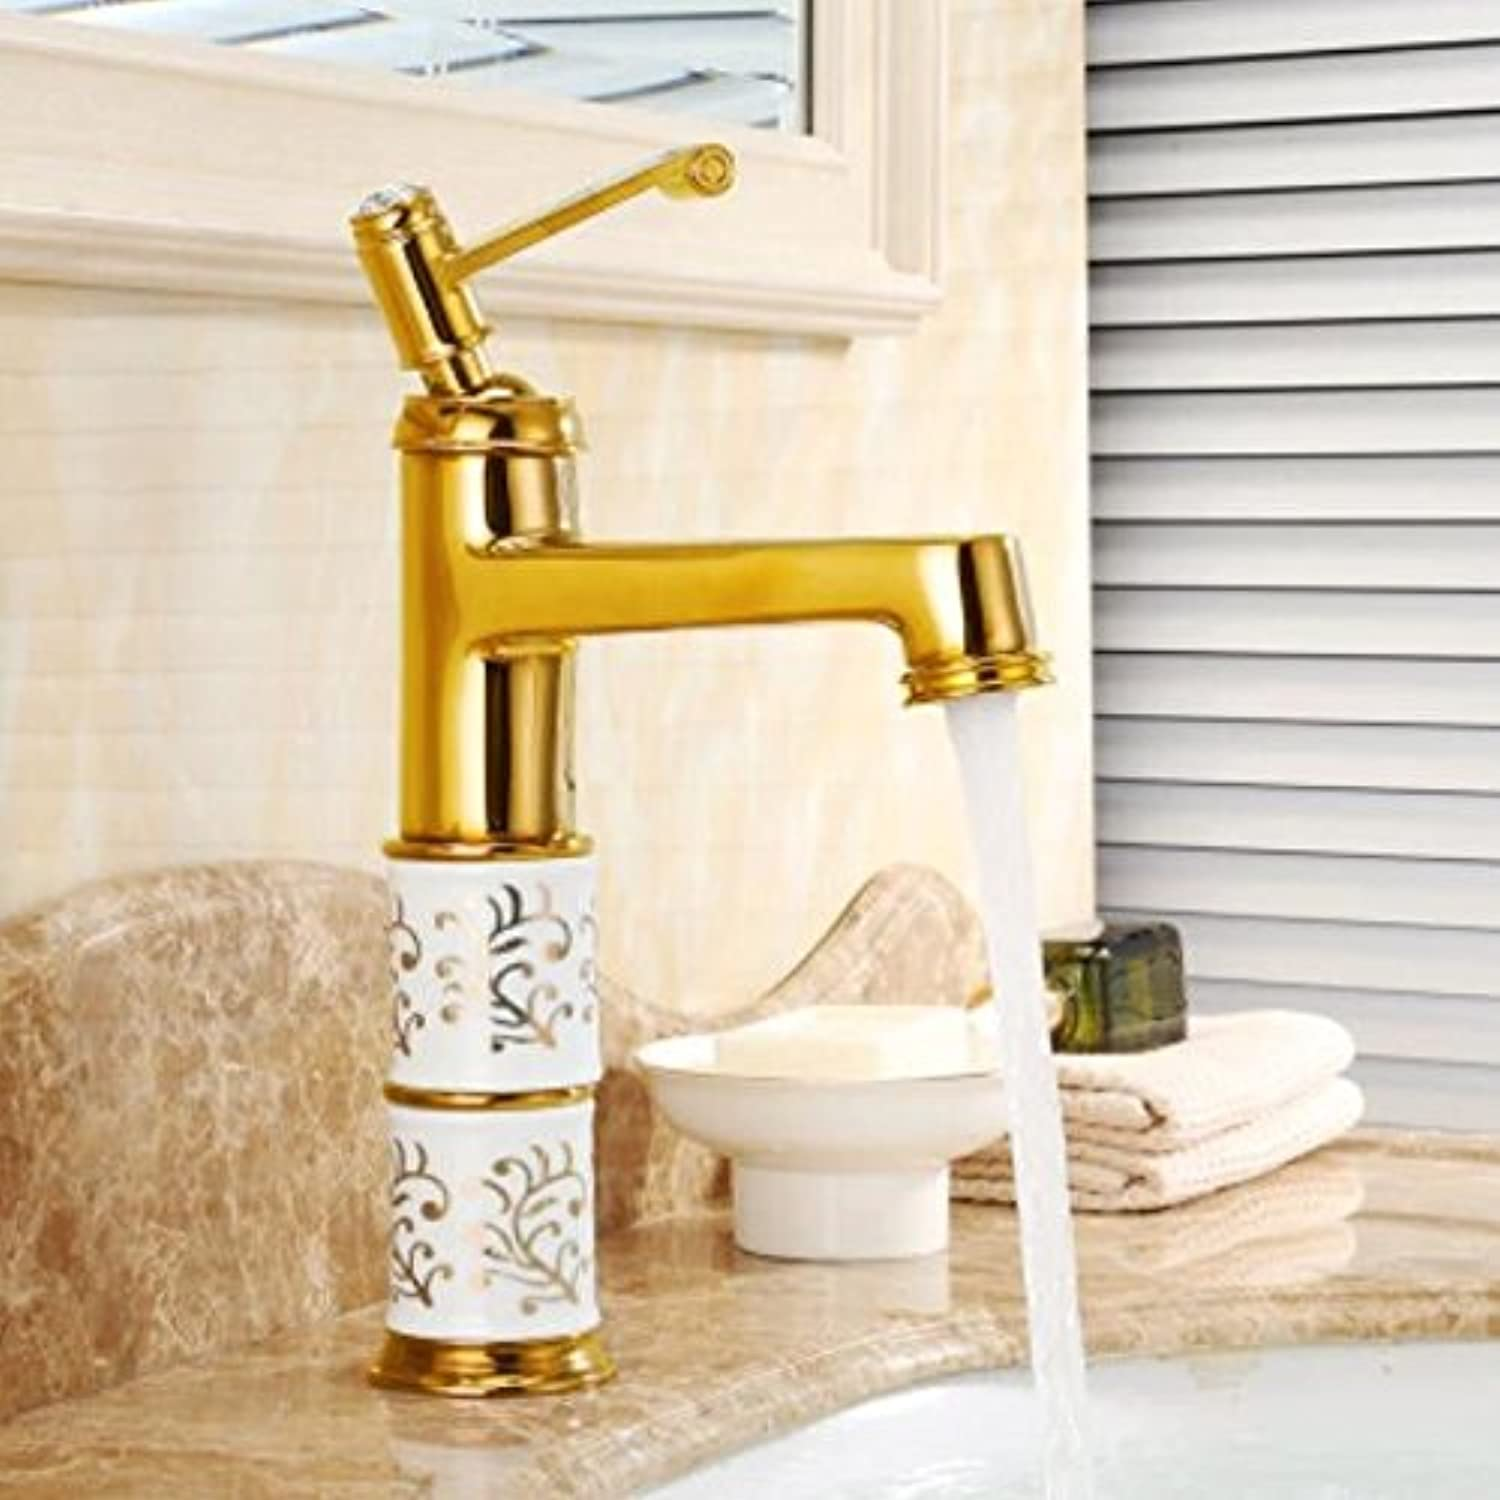 Decorry golden Hot and Cold All Copper Washbasin Faucet Antique Wash Basin Faucet European Basin Basin Washbasin Faucet Ceramic Core Spool Hose